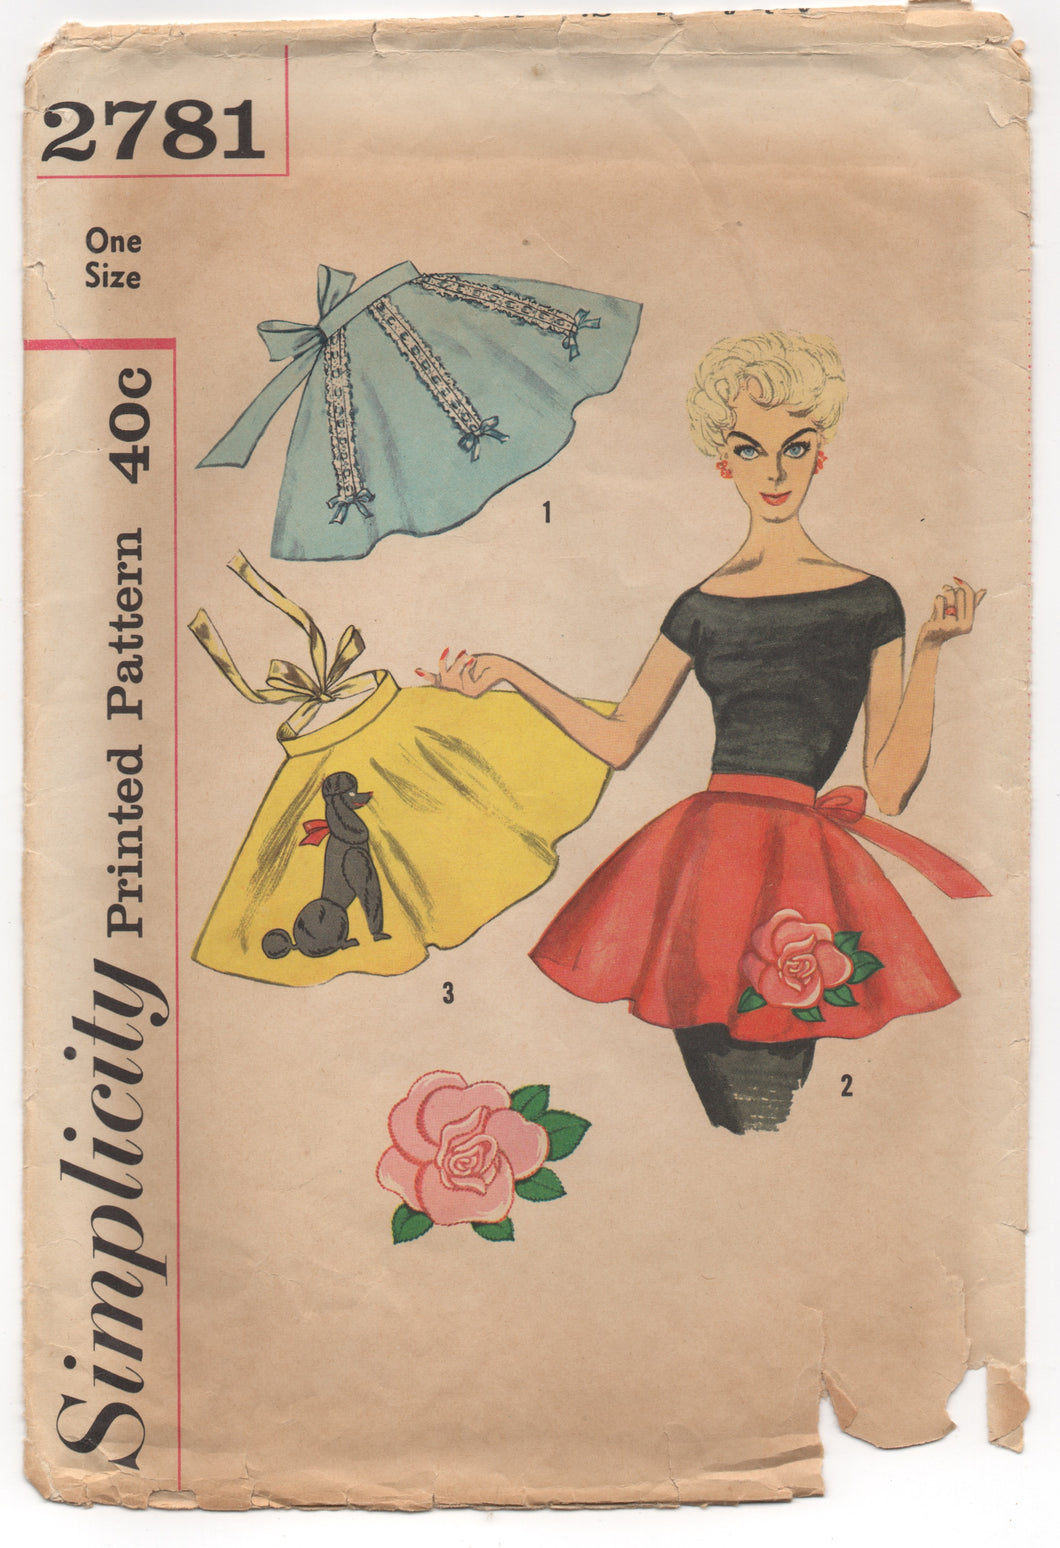 1950's Simplicity Half Apron with Poodle or Large Rose transfer UNUSED - One Size - No. 2781